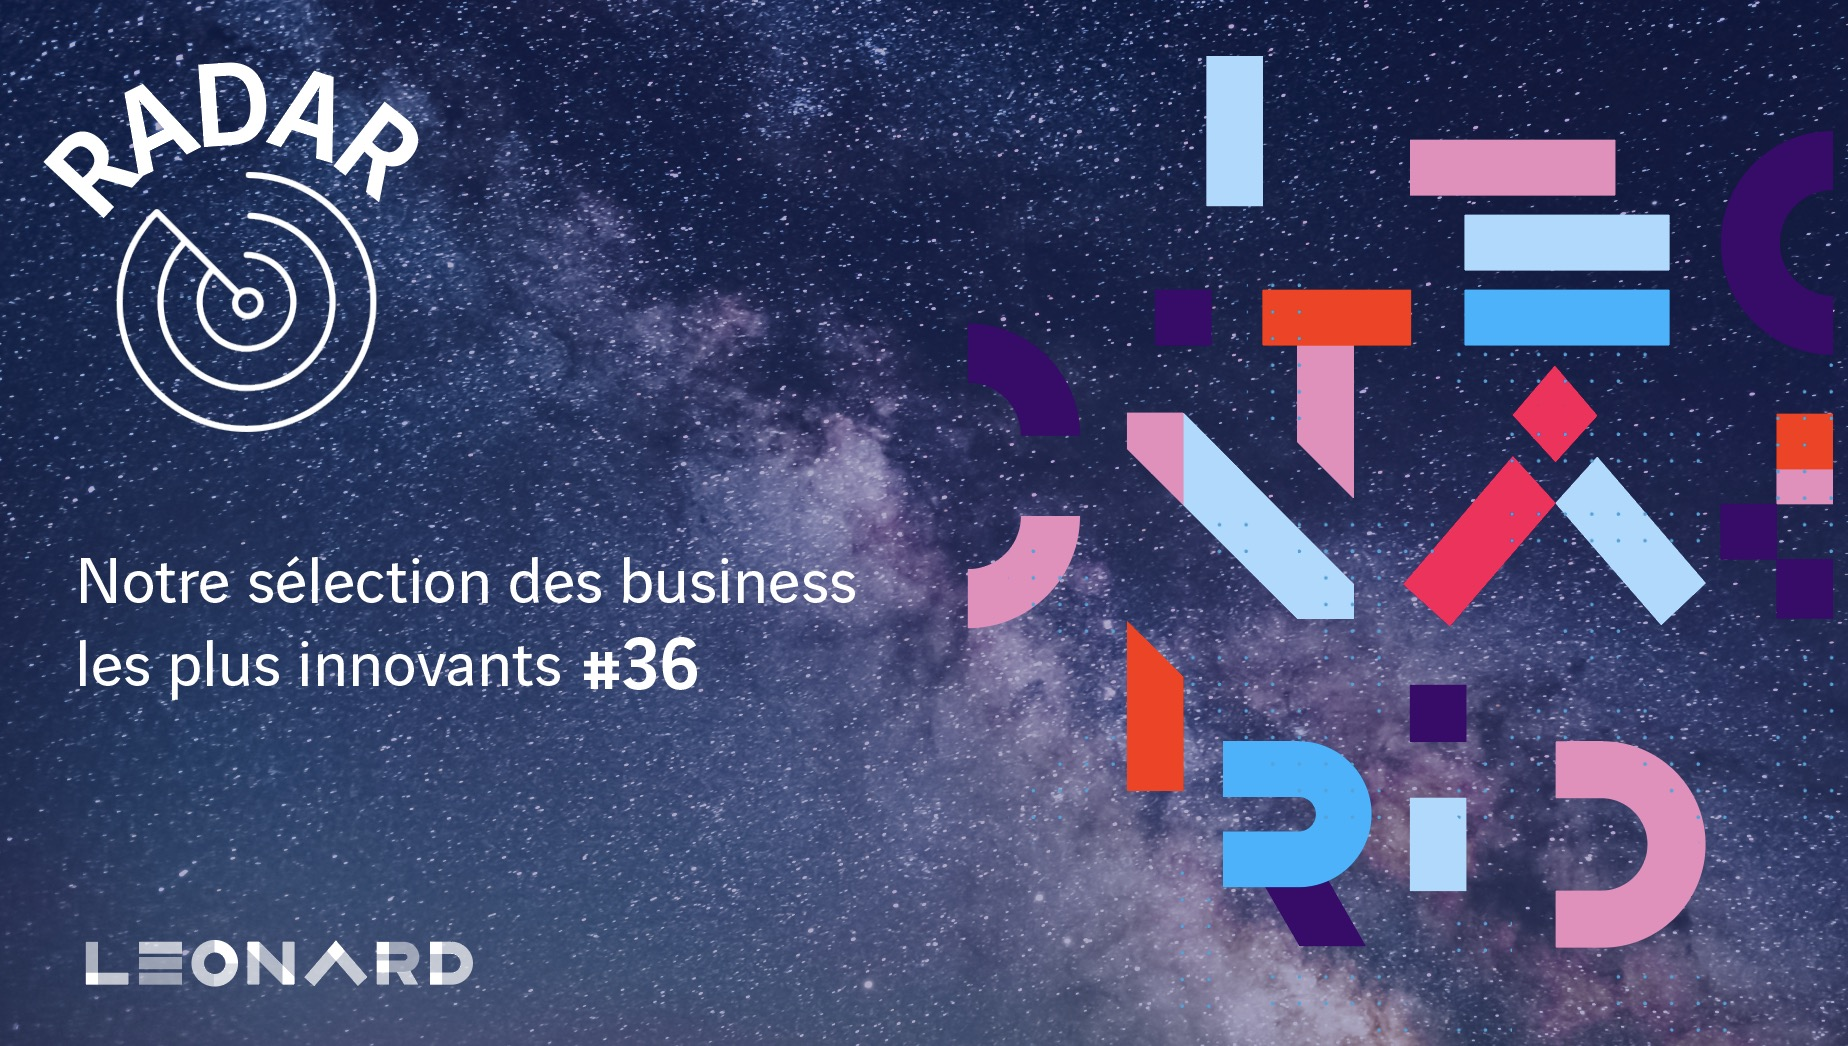 Radar – Our selection of innovative businesses #36